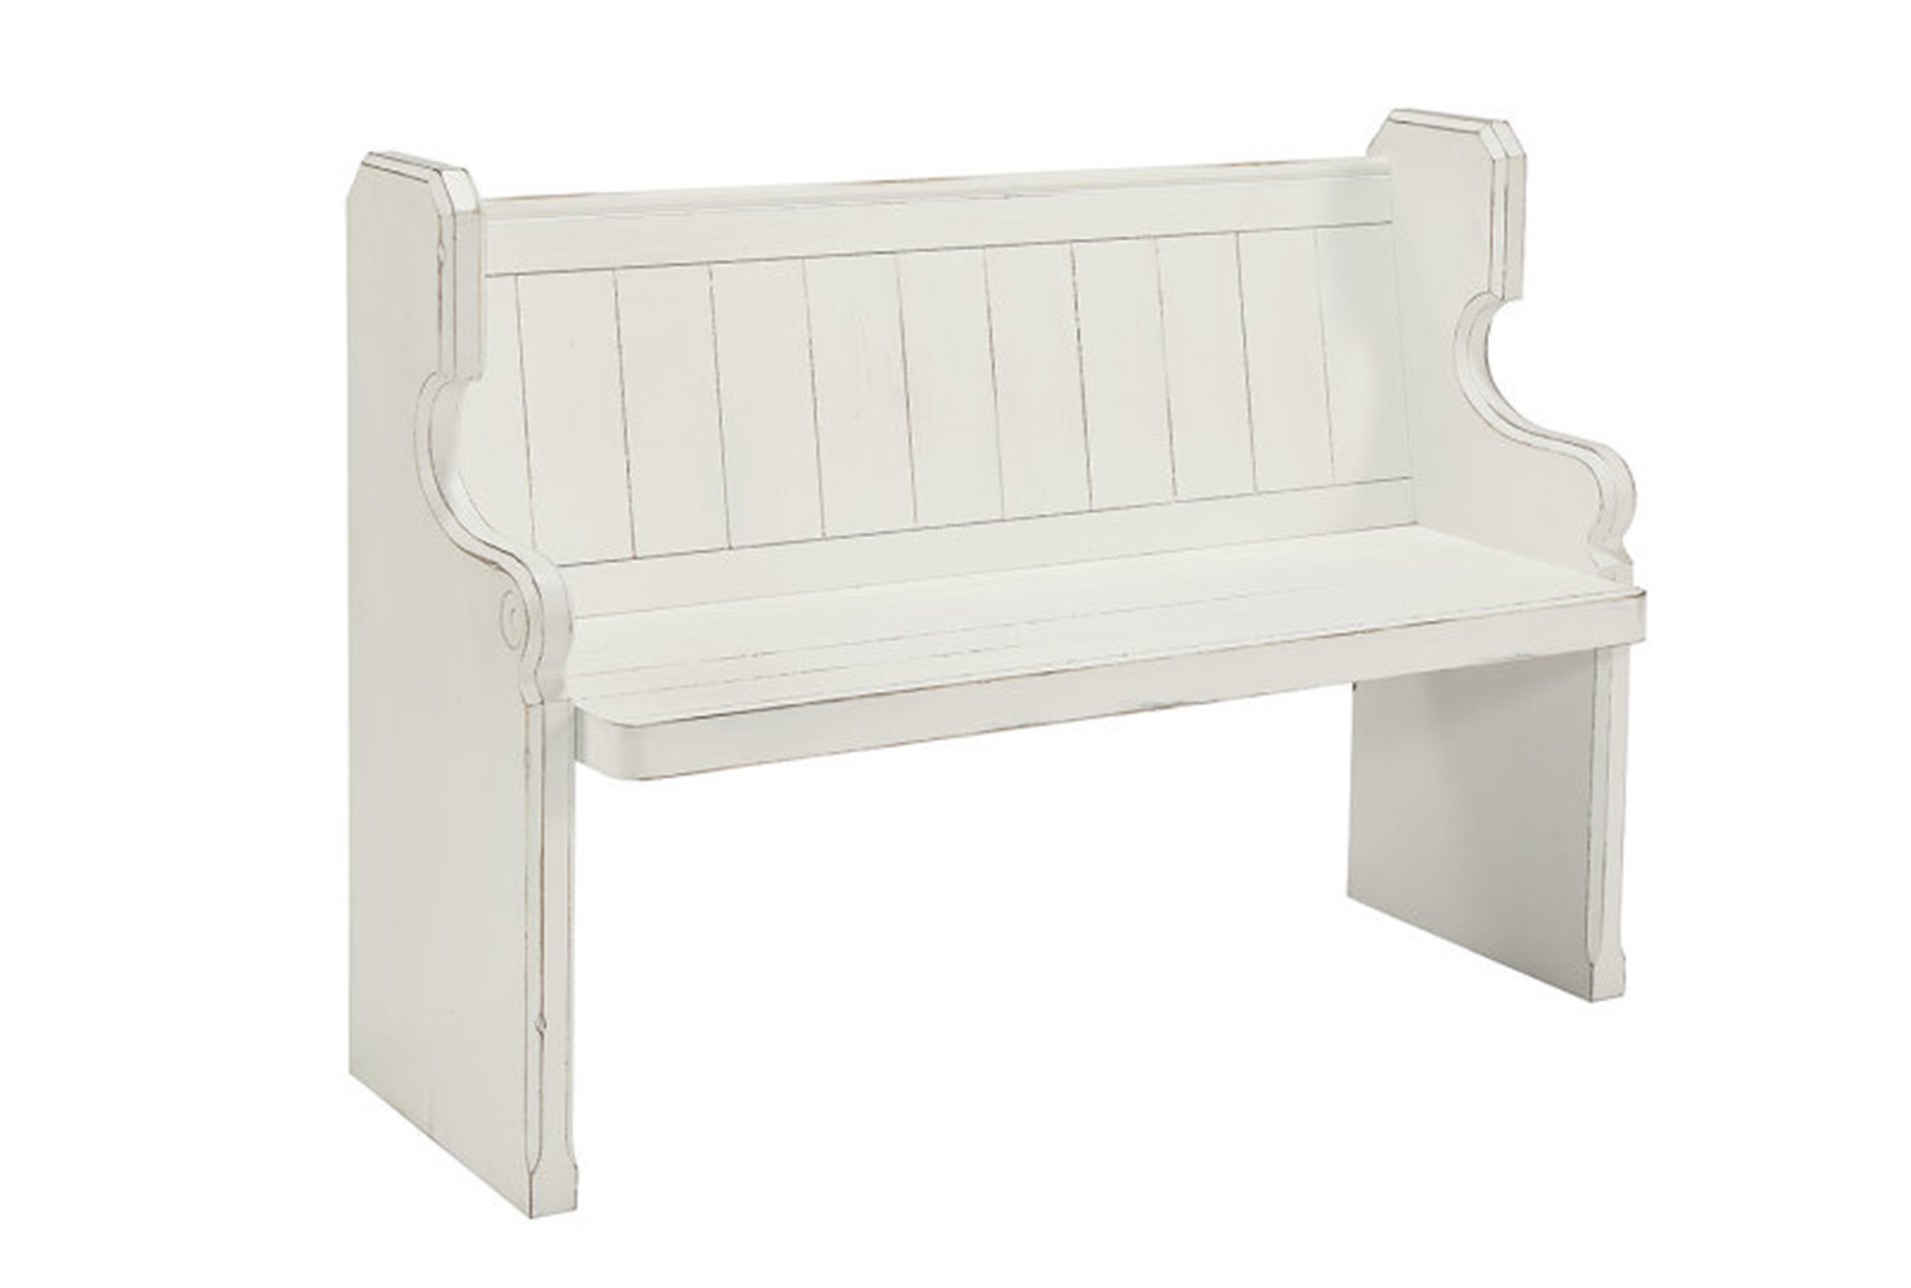 Swell Magnolia Home Pew Bench By Joanna Gaines Andrewgaddart Wooden Chair Designs For Living Room Andrewgaddartcom